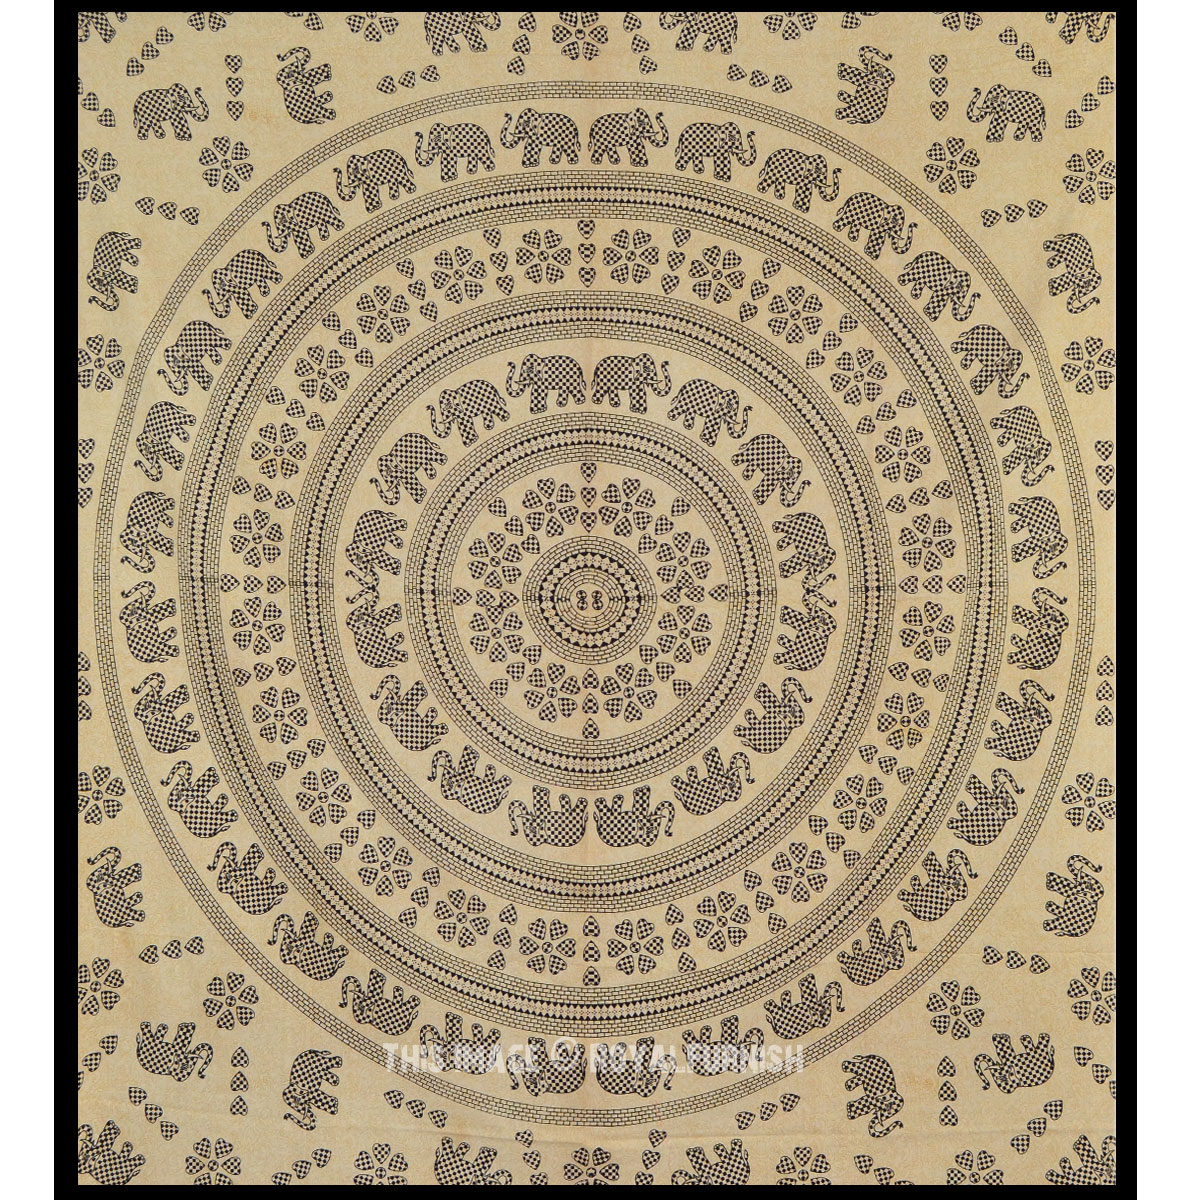 Black Elephant Mandala Hippie Wall Hanging Bohemian Tapestry Bed Cover Home Decorative Art - RoyalFurnish.com